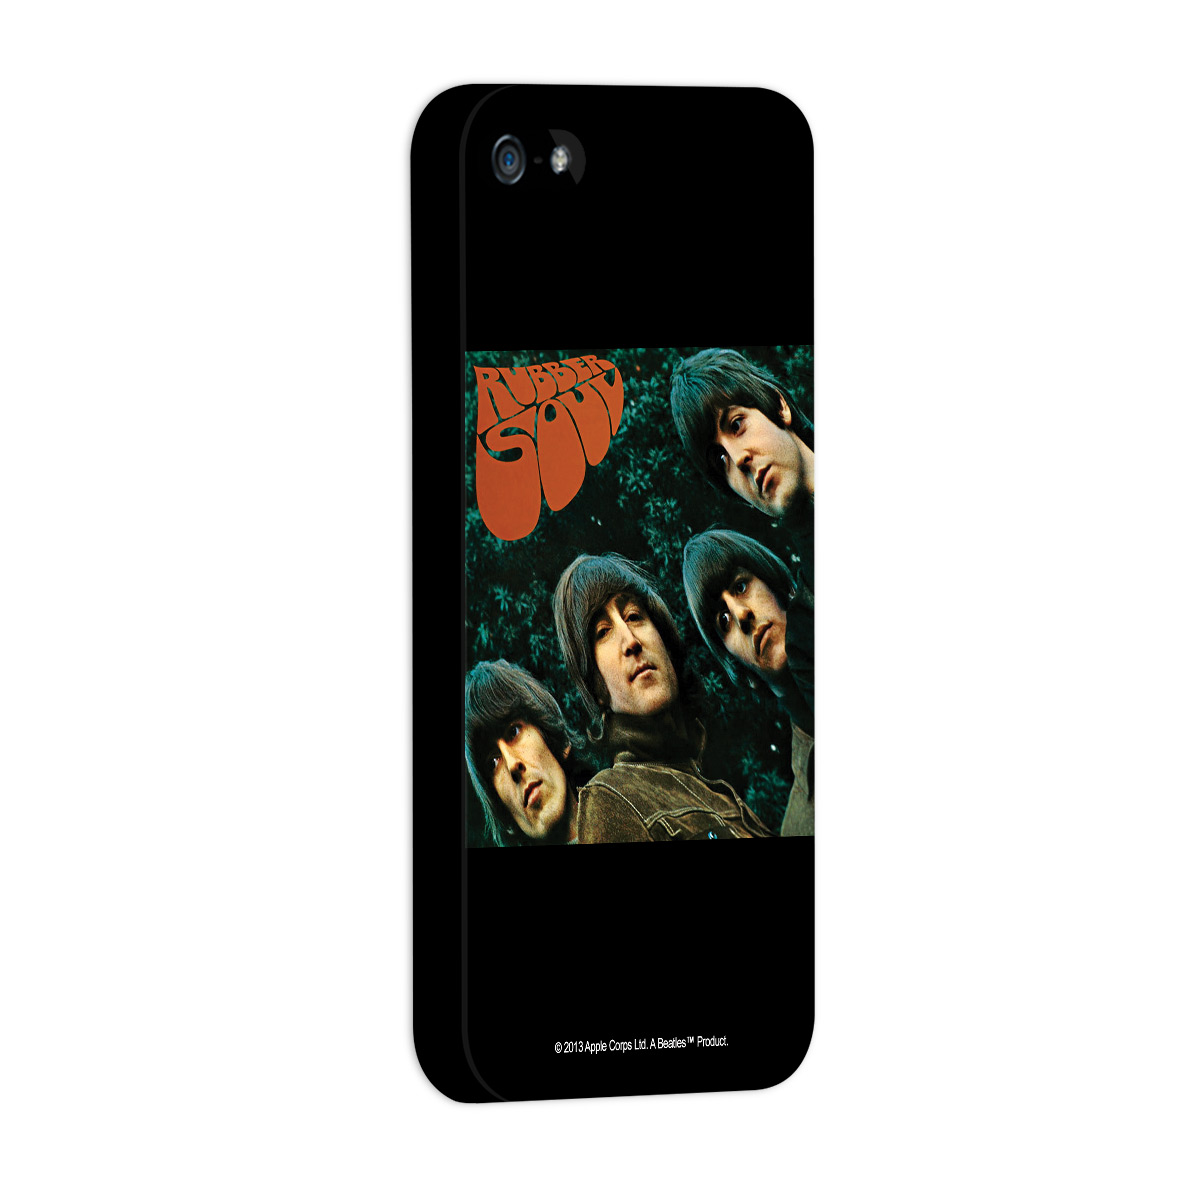 Capa de iPhone 5/5S The Beatles Rubber Soul